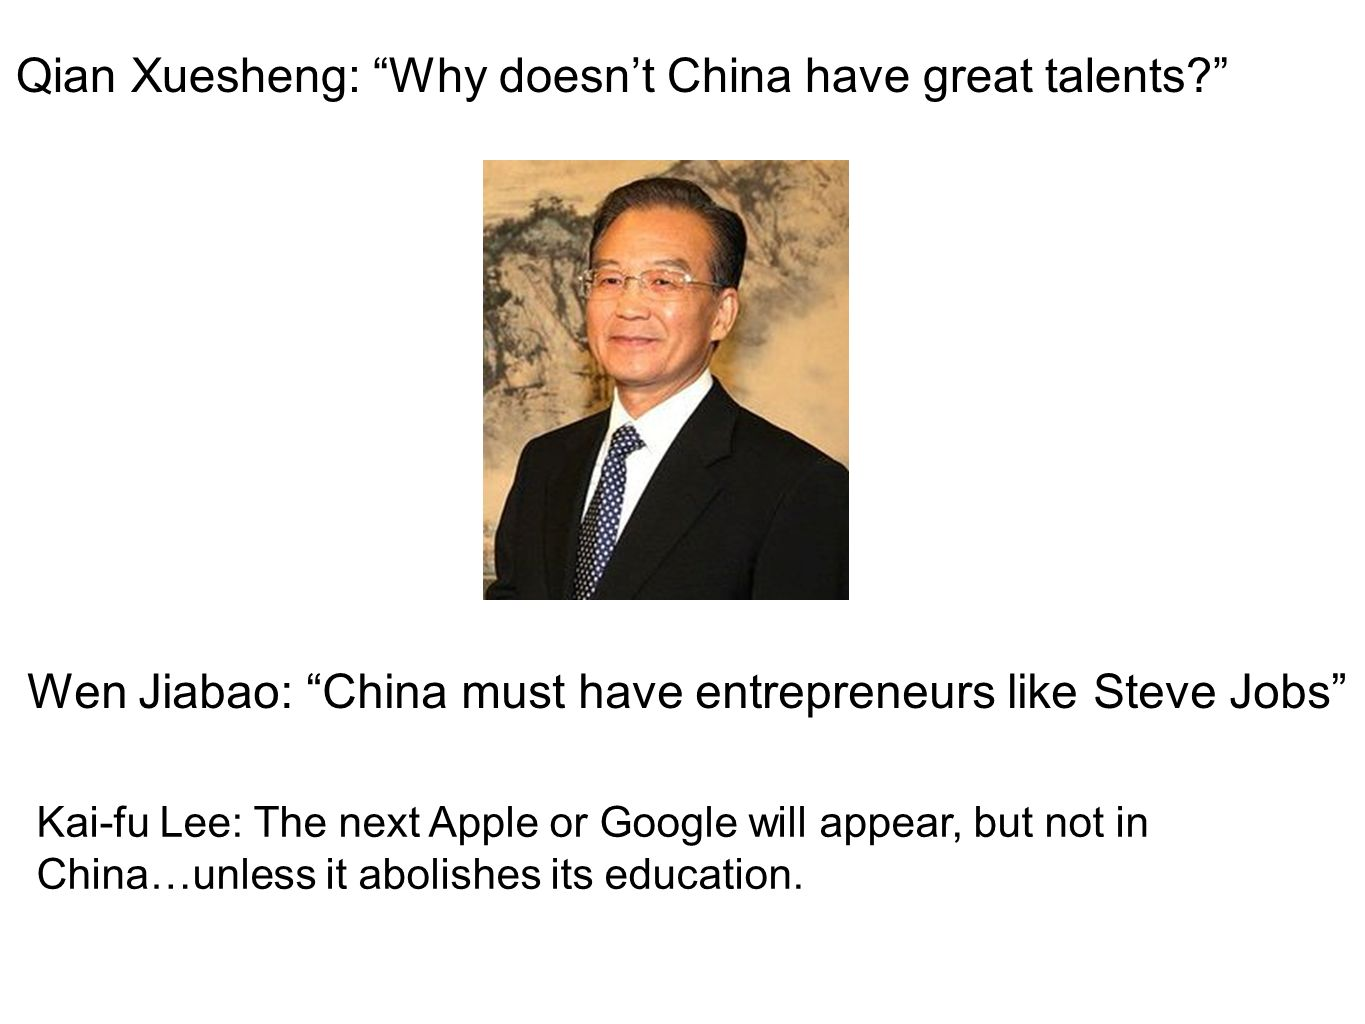 Qian Xuesheng: Why doesn't China have great talents